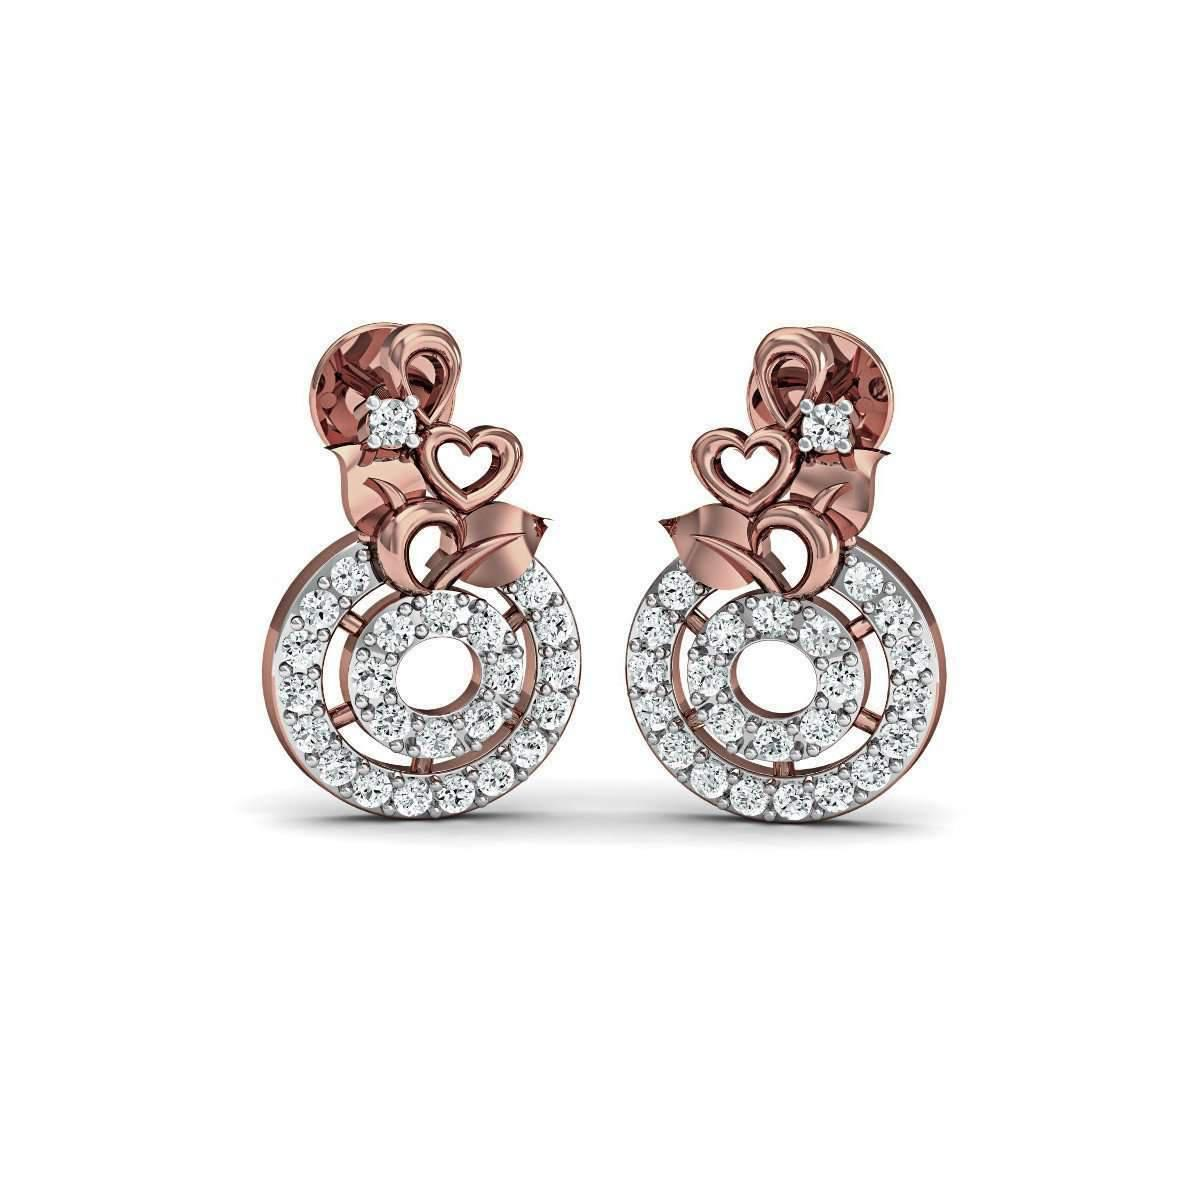 Diamoire Jewels Thrilling 18kt Rose Gold Diamond Studs